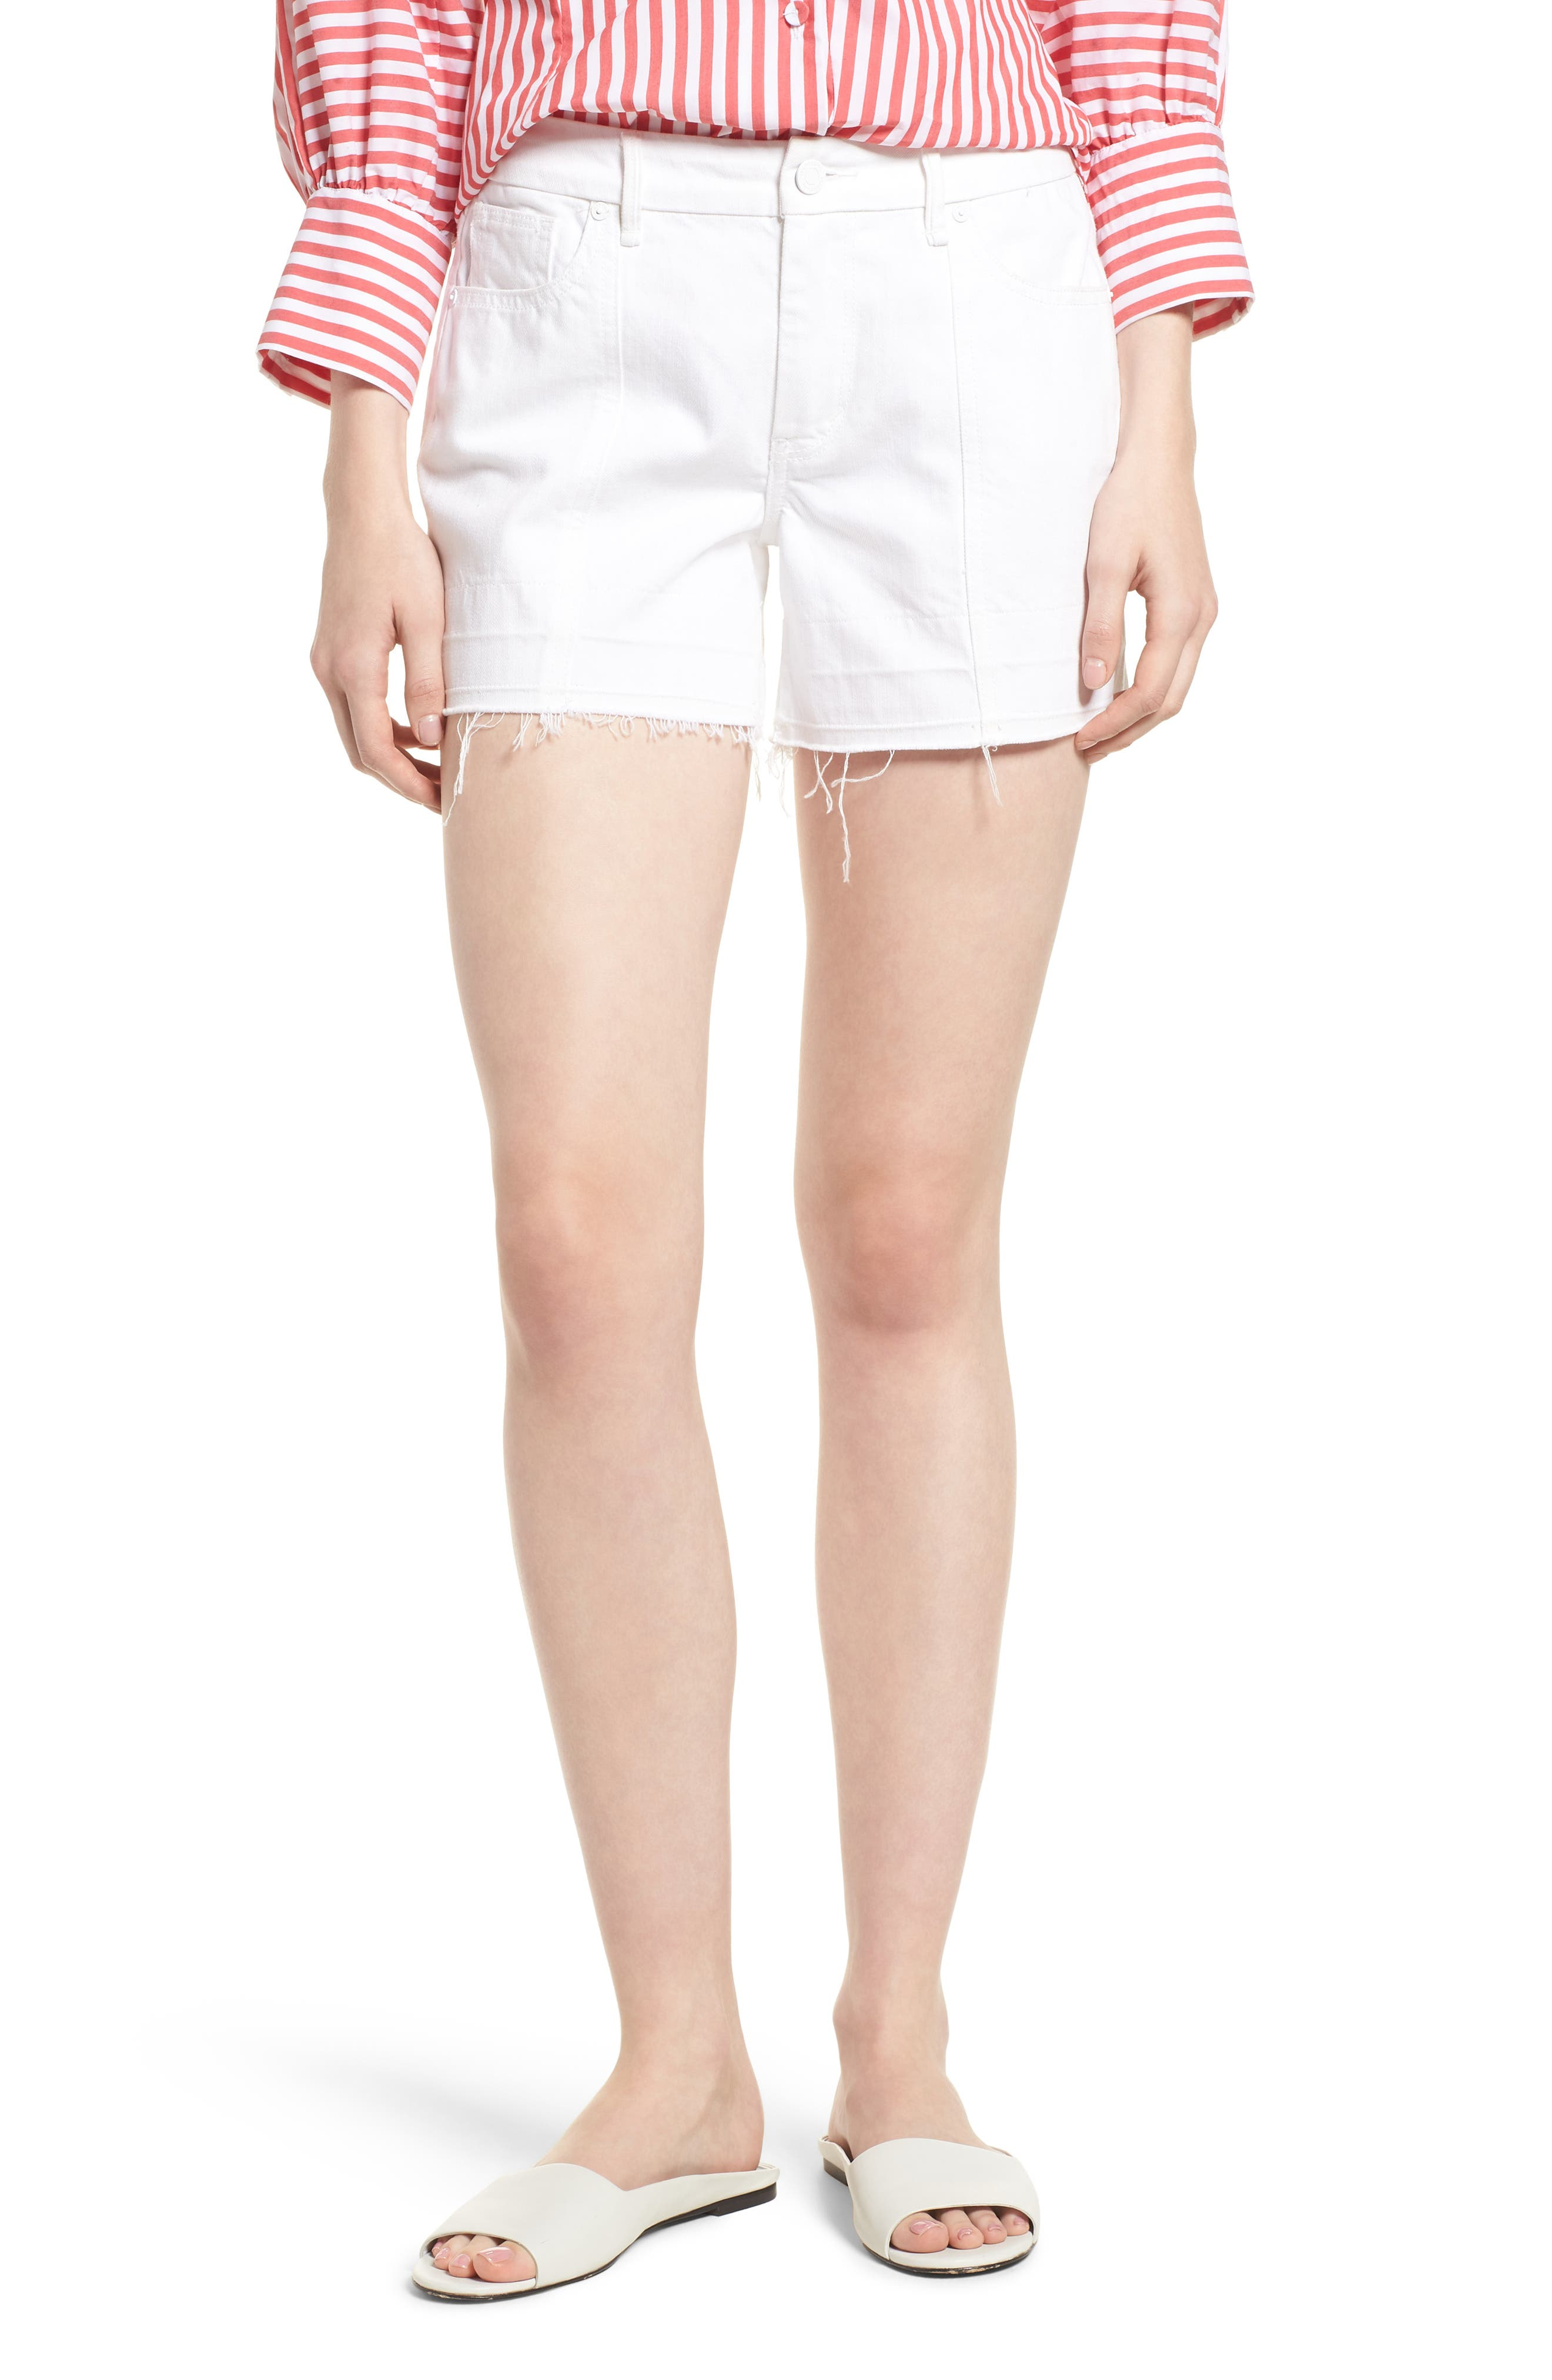 Crosby Release Hem Shorts,                             Main thumbnail 1, color,                             165